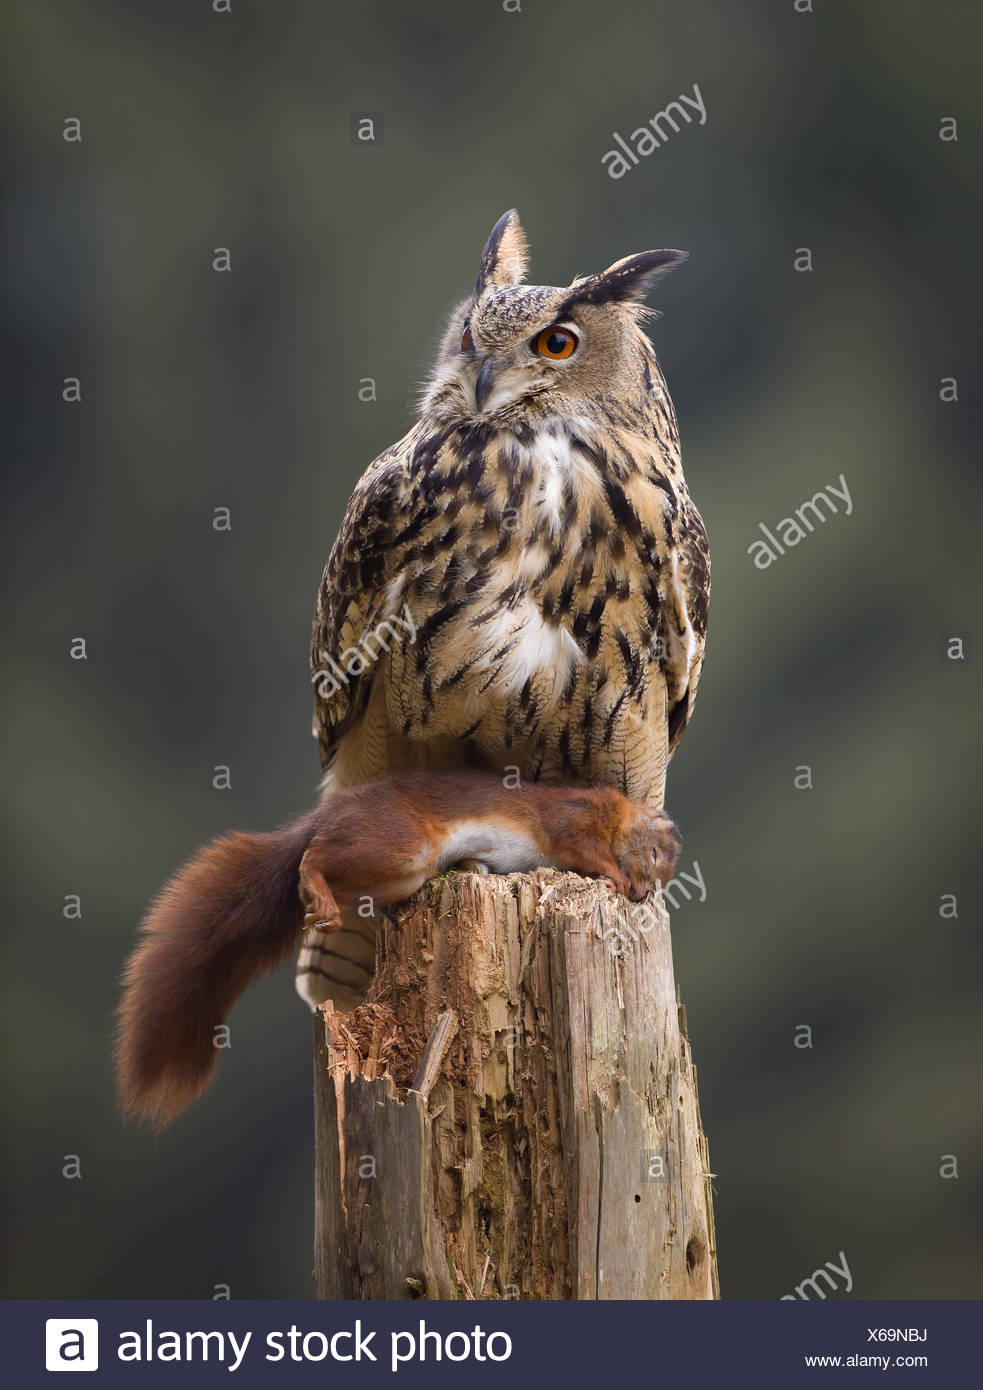 Eagle Owl - Stock Image